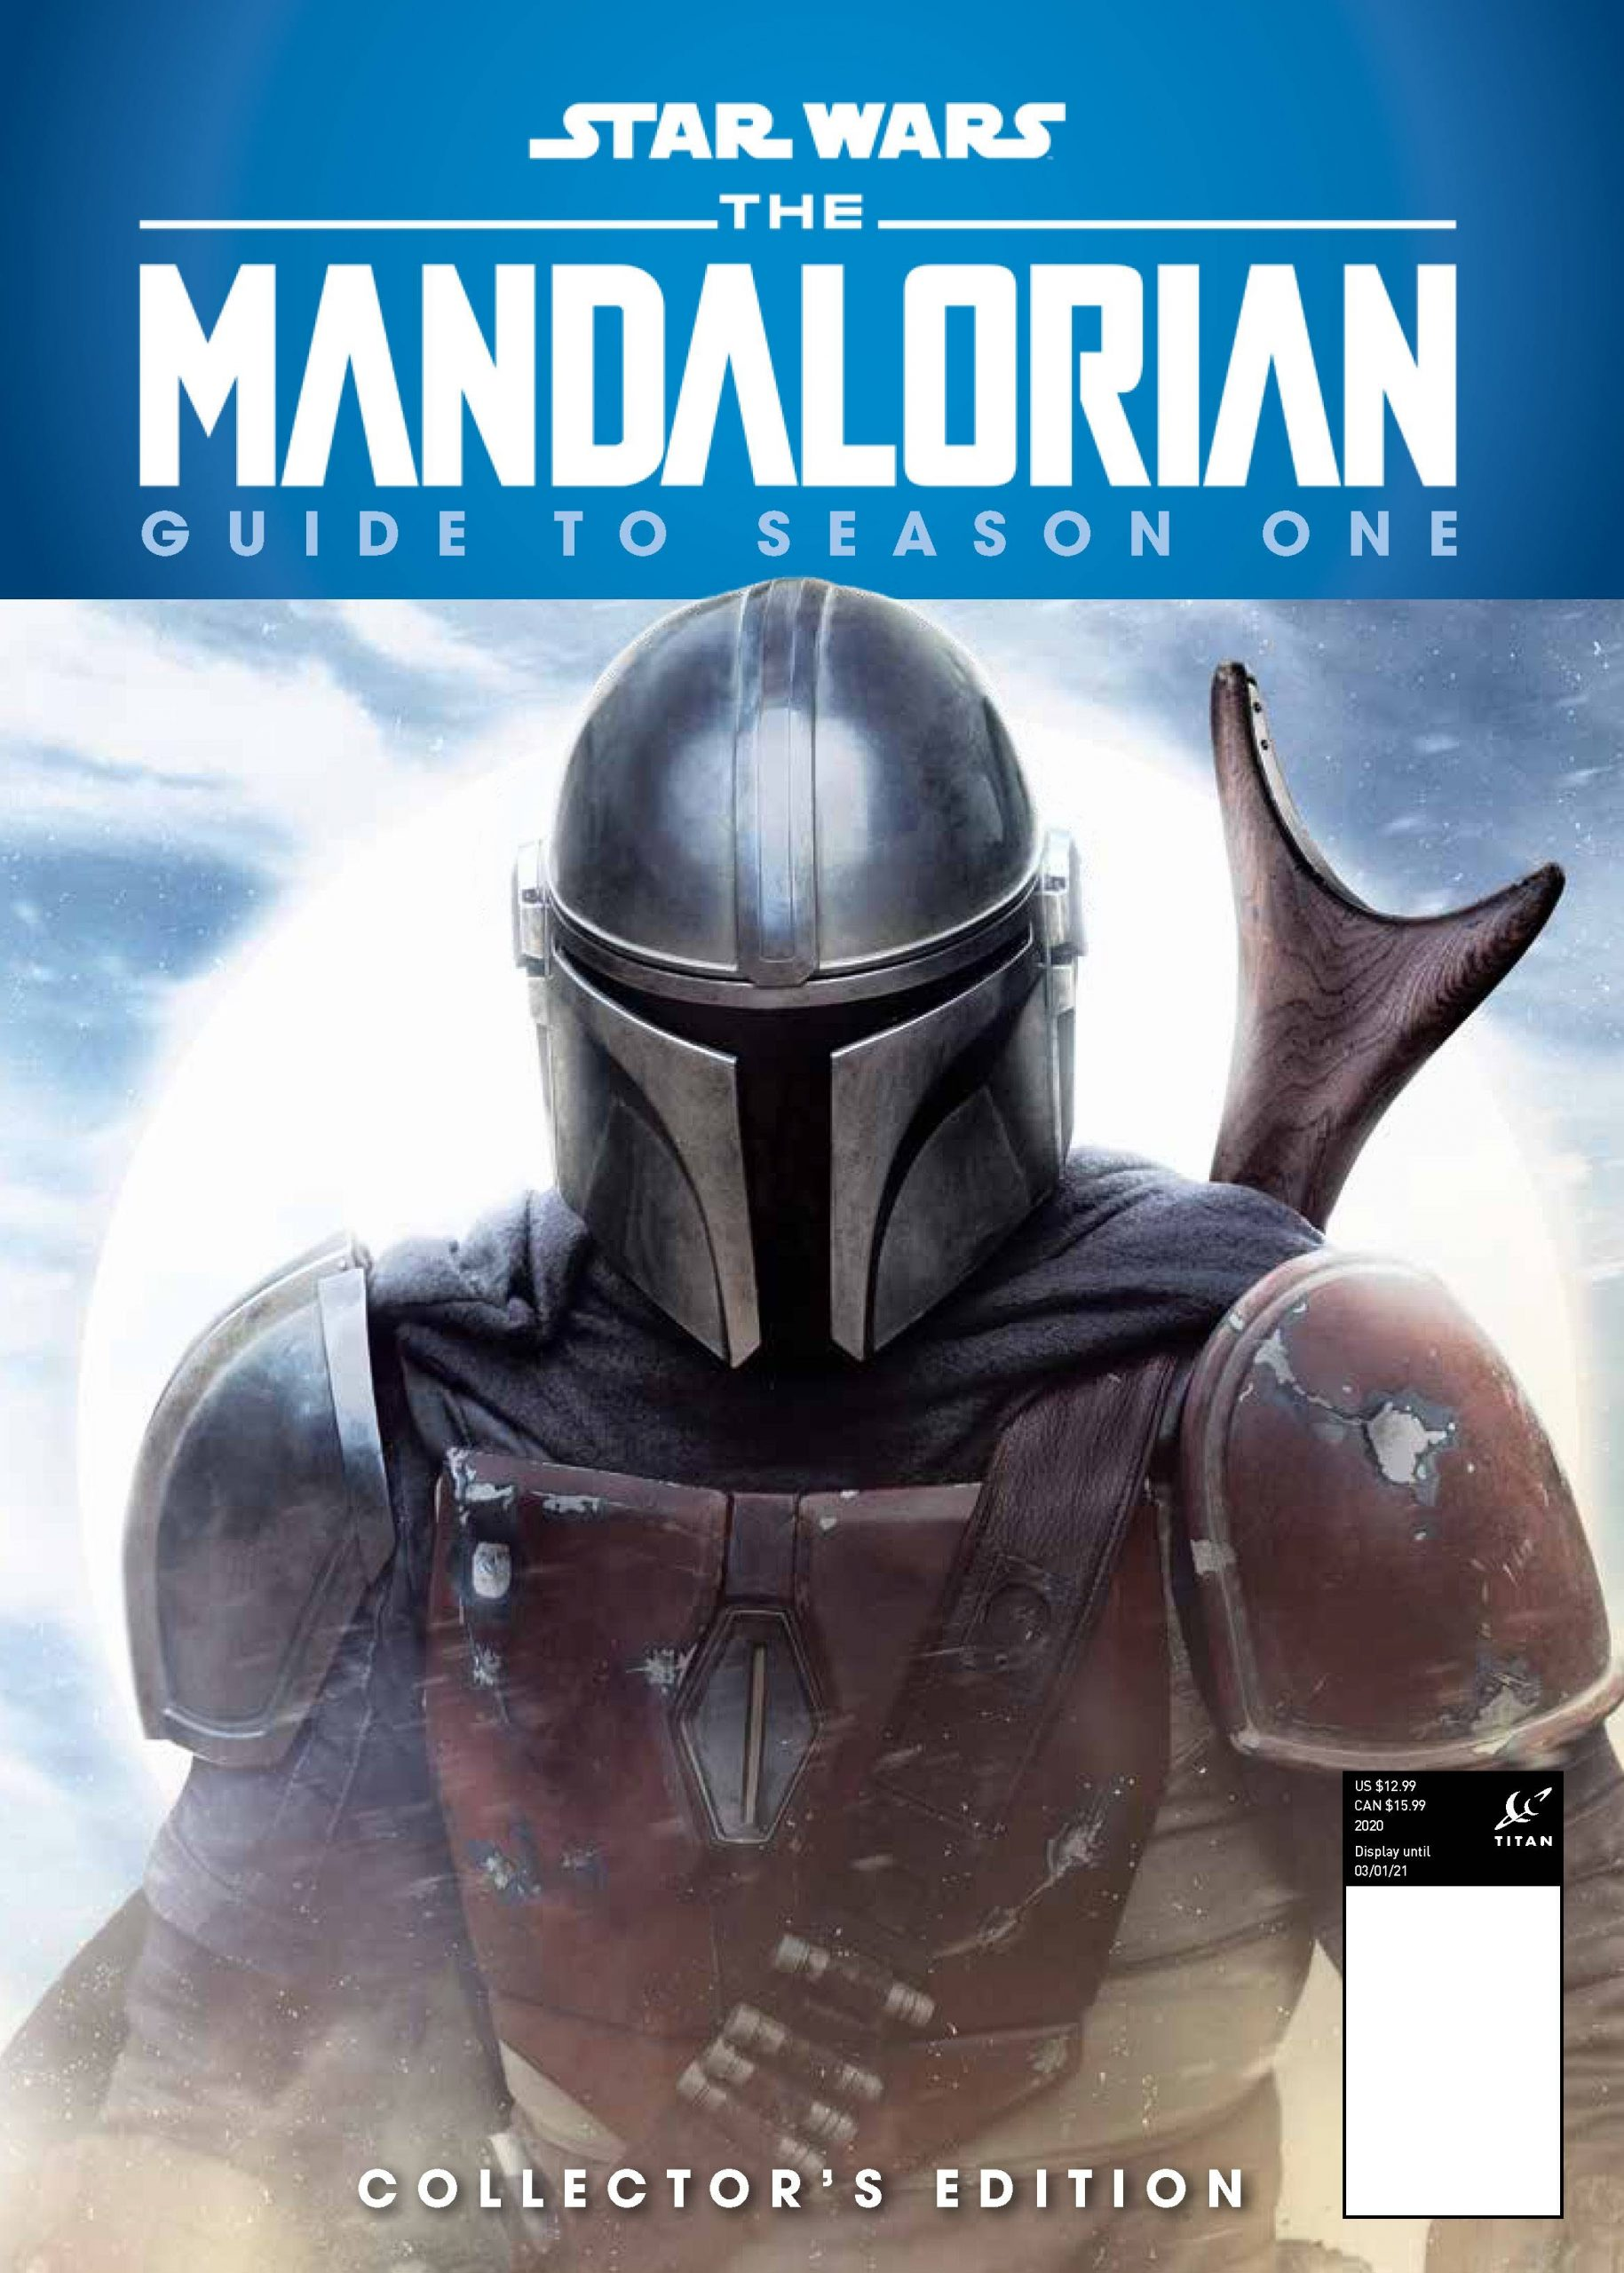 Star Wars The Mandalorian - Guide to Season One Hardcover Book